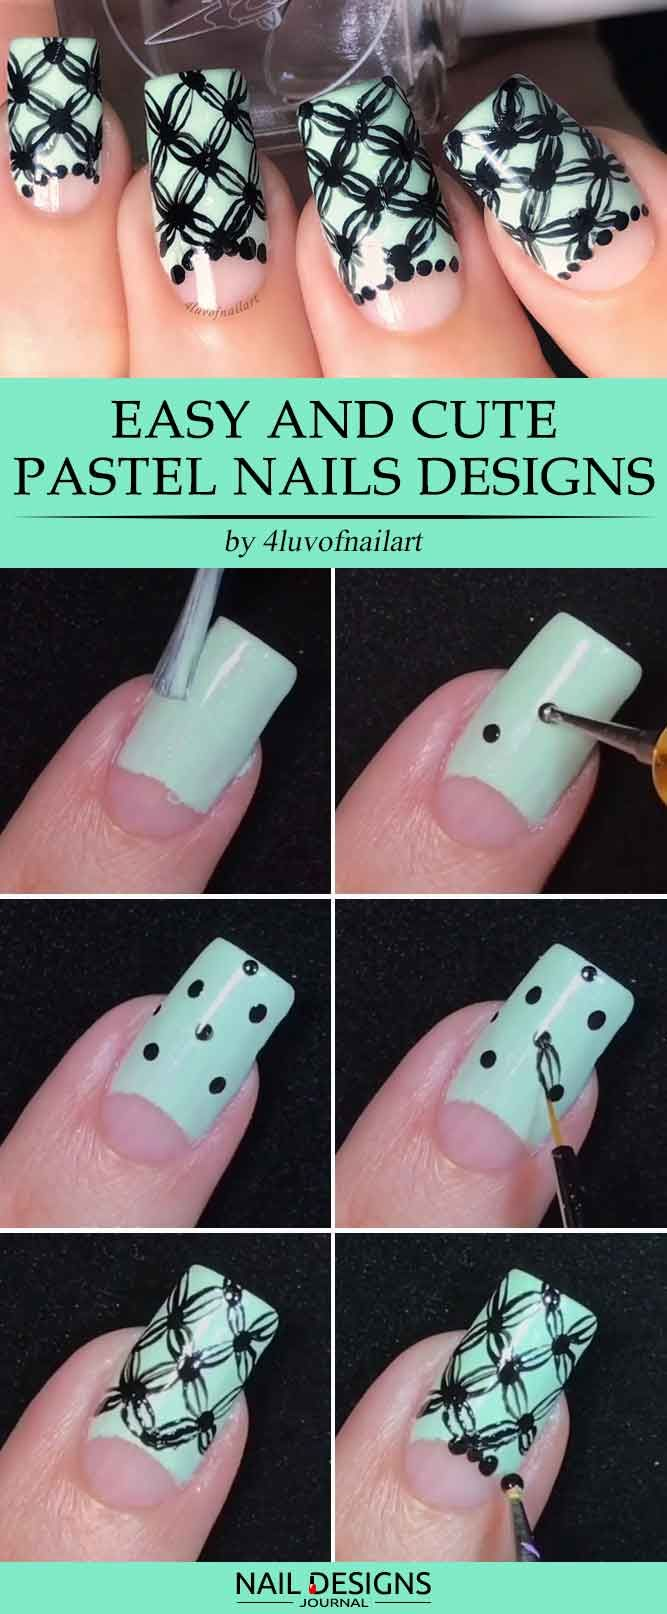 17 Super Easy Nail Designs Diy Tutorials Pinterest Diy Tutorial